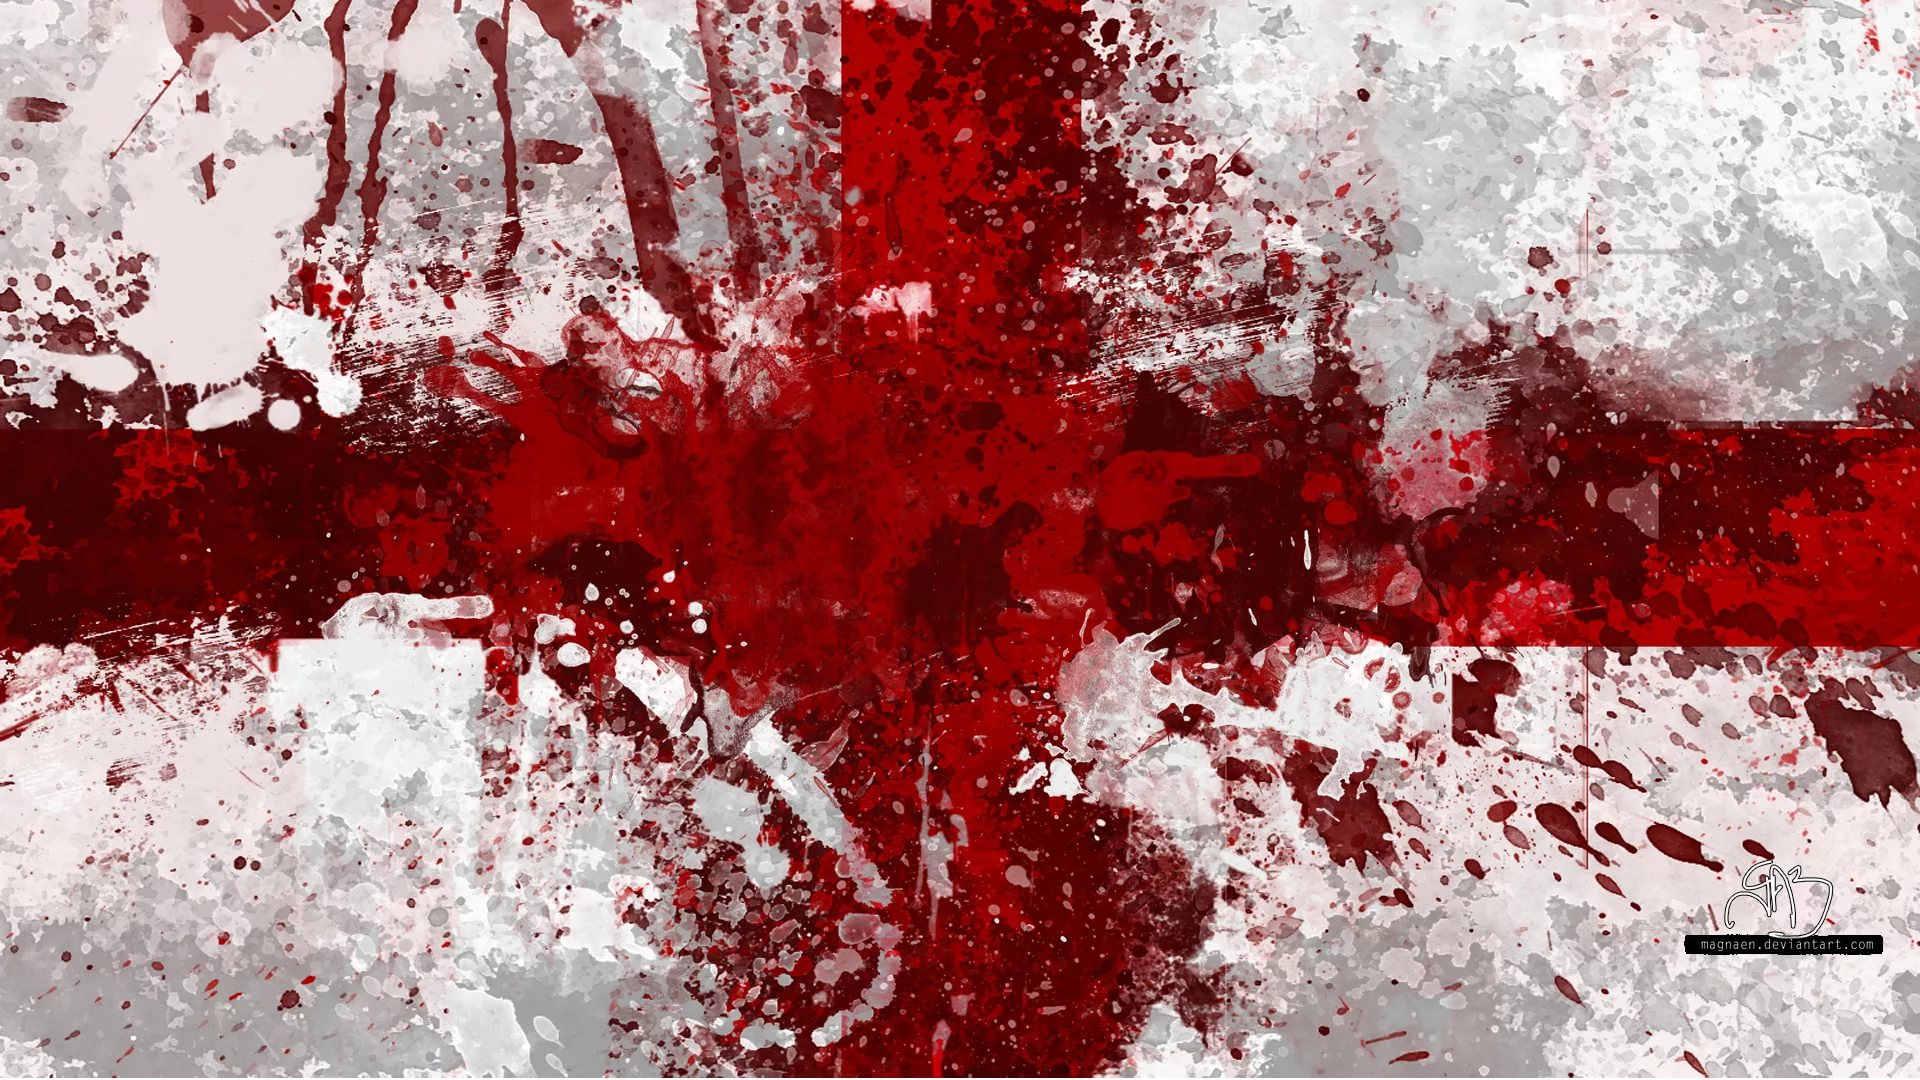 Blood wallpaper